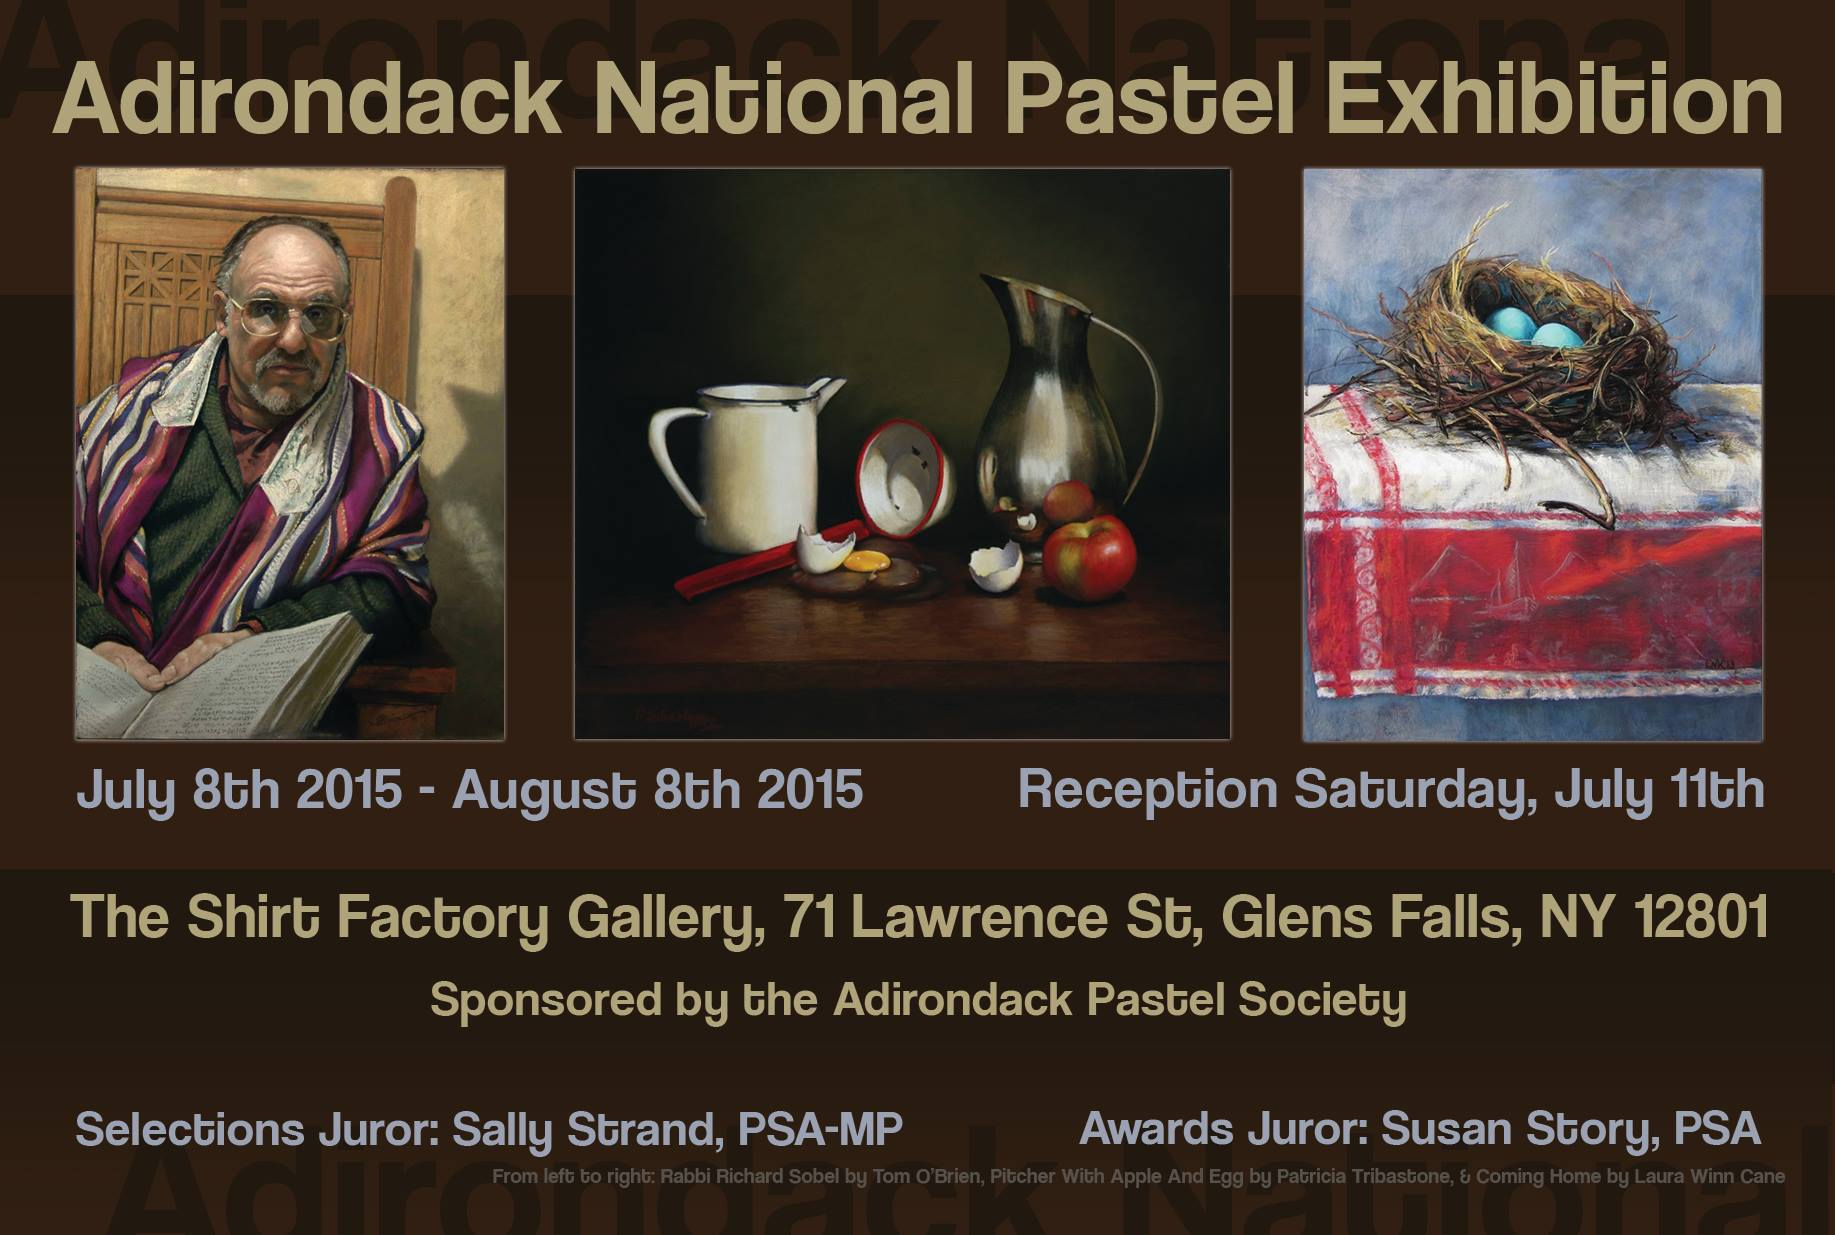 Adirondack Nation Pastel Exhibition